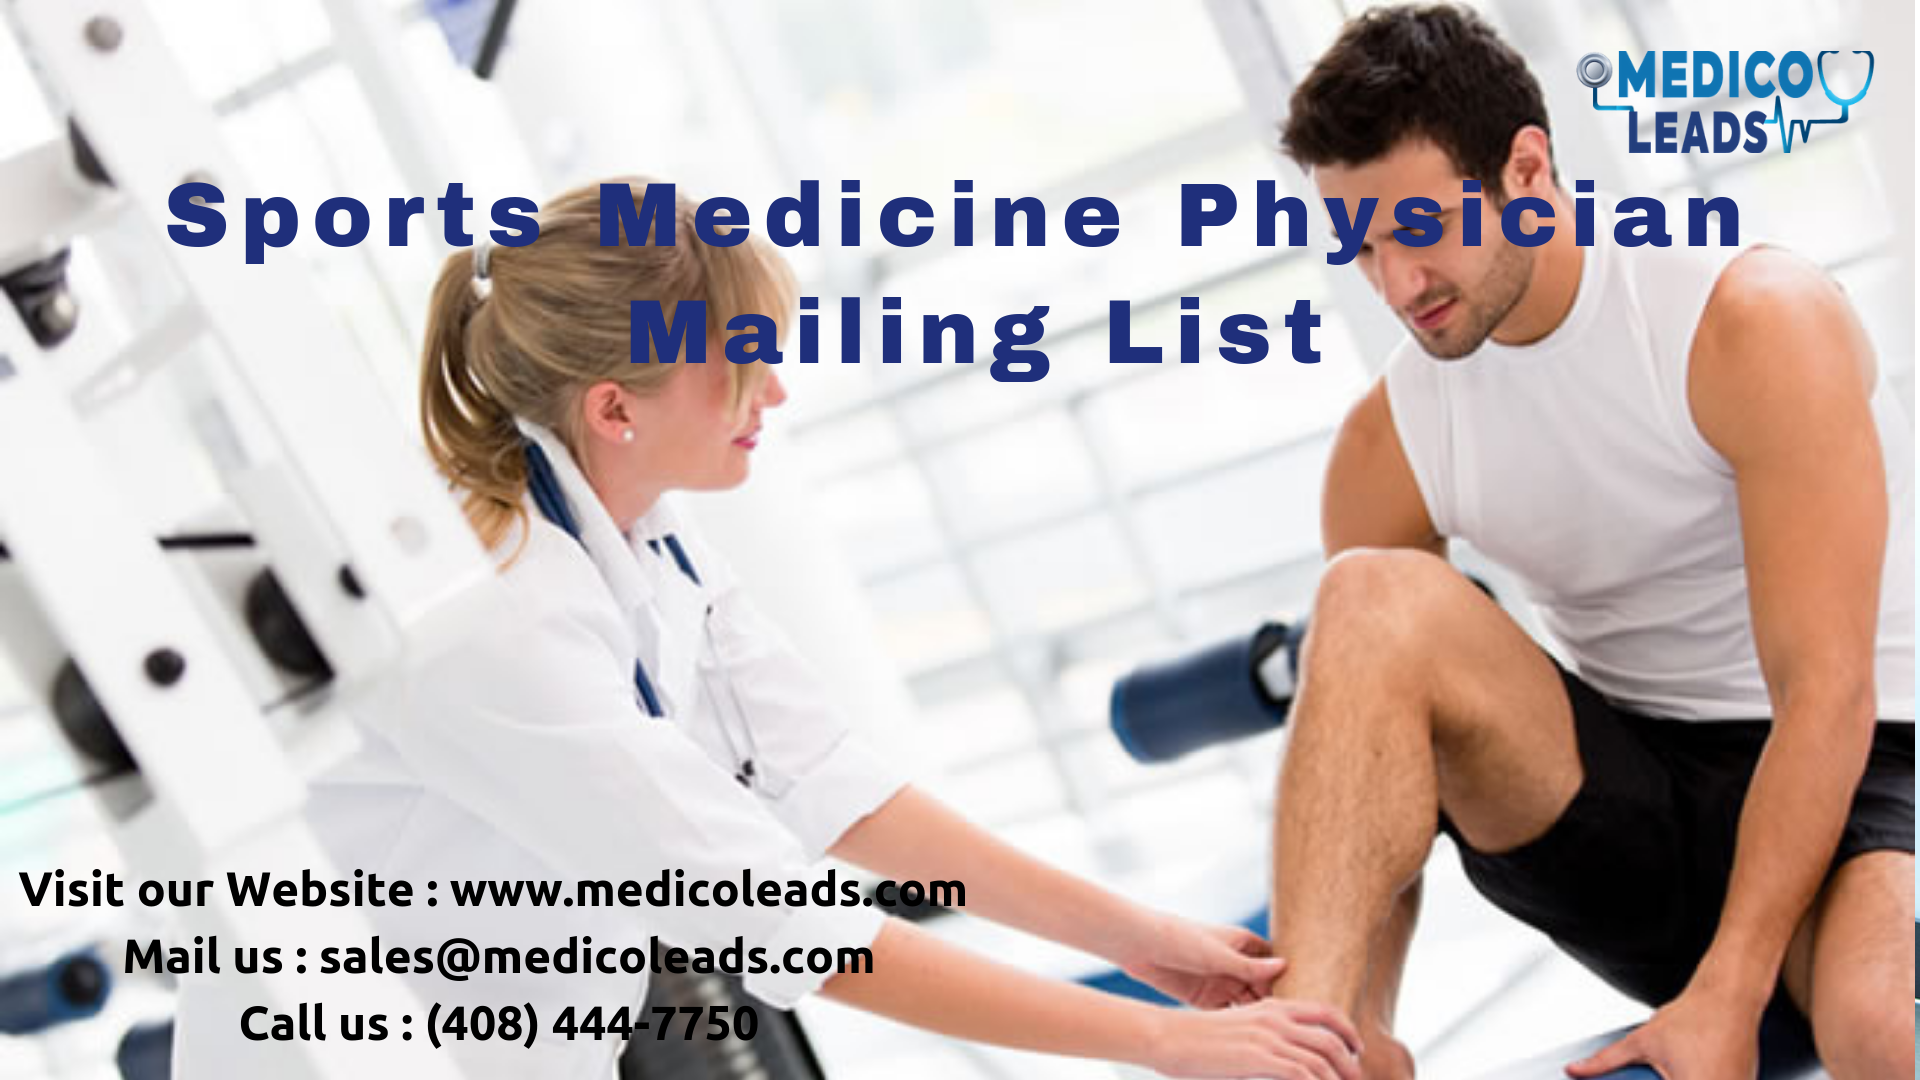 Sports Medicine Physician Mailing List consists of all the